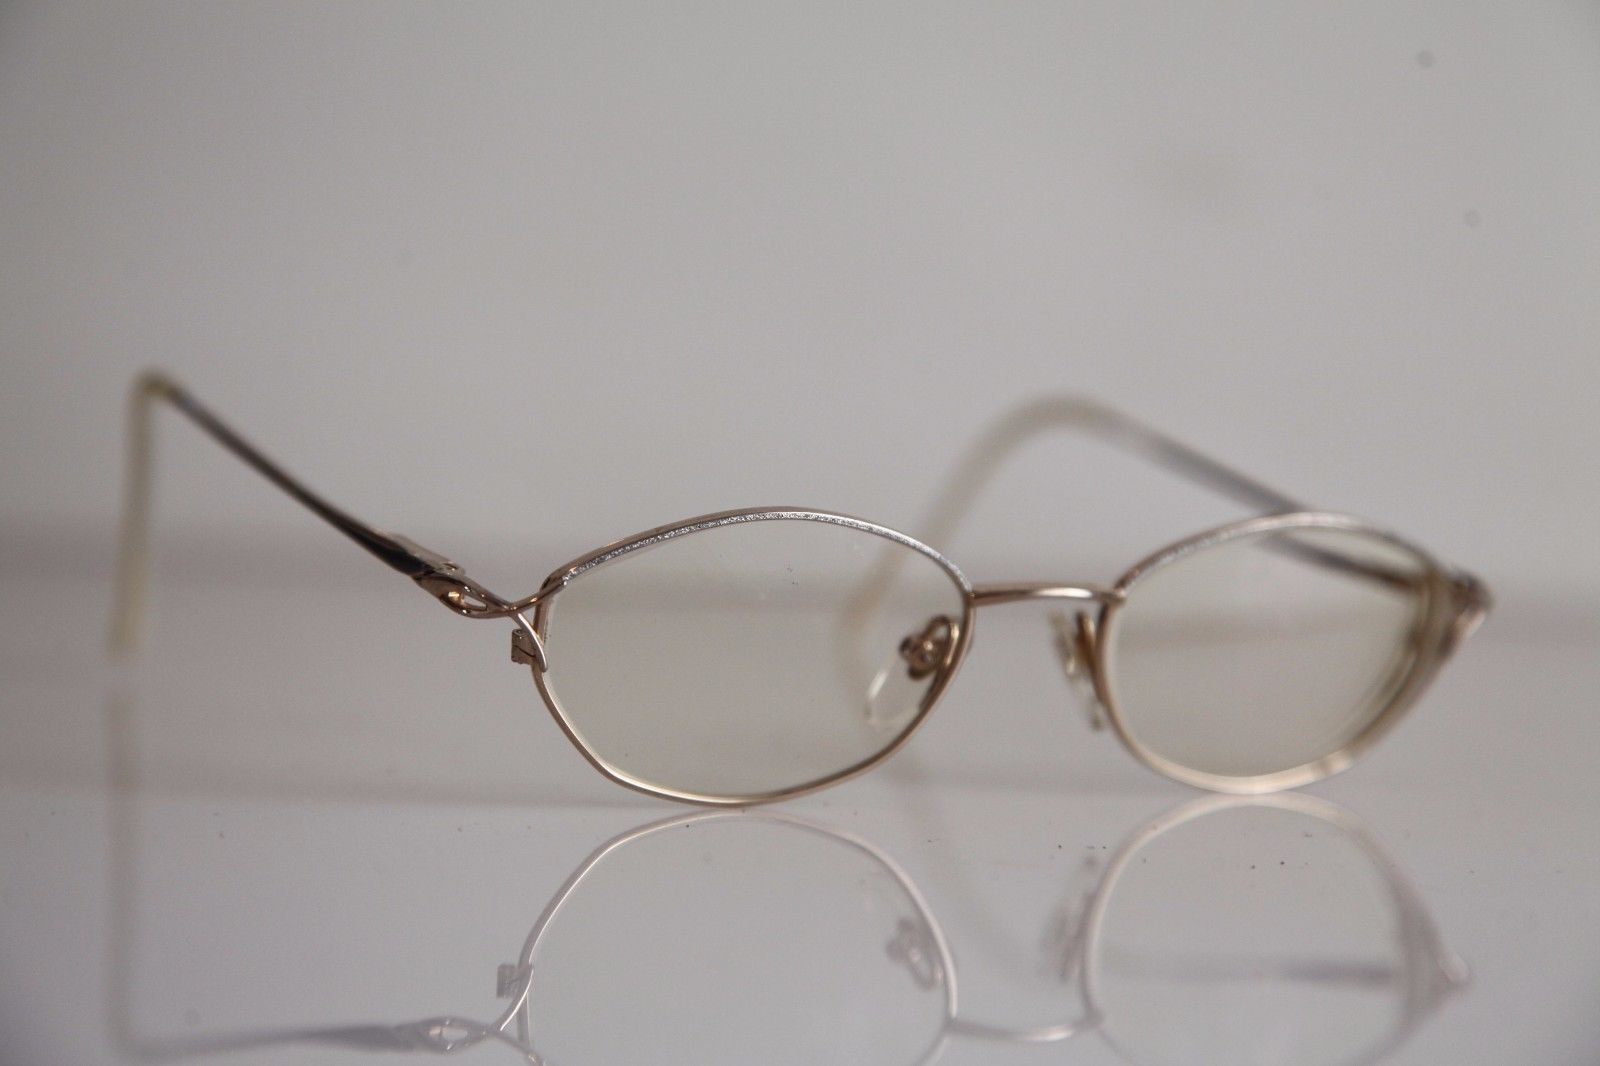 AMA Eyewear, Gold and Silver Frame,  RX-Able Prescription lenses. USA